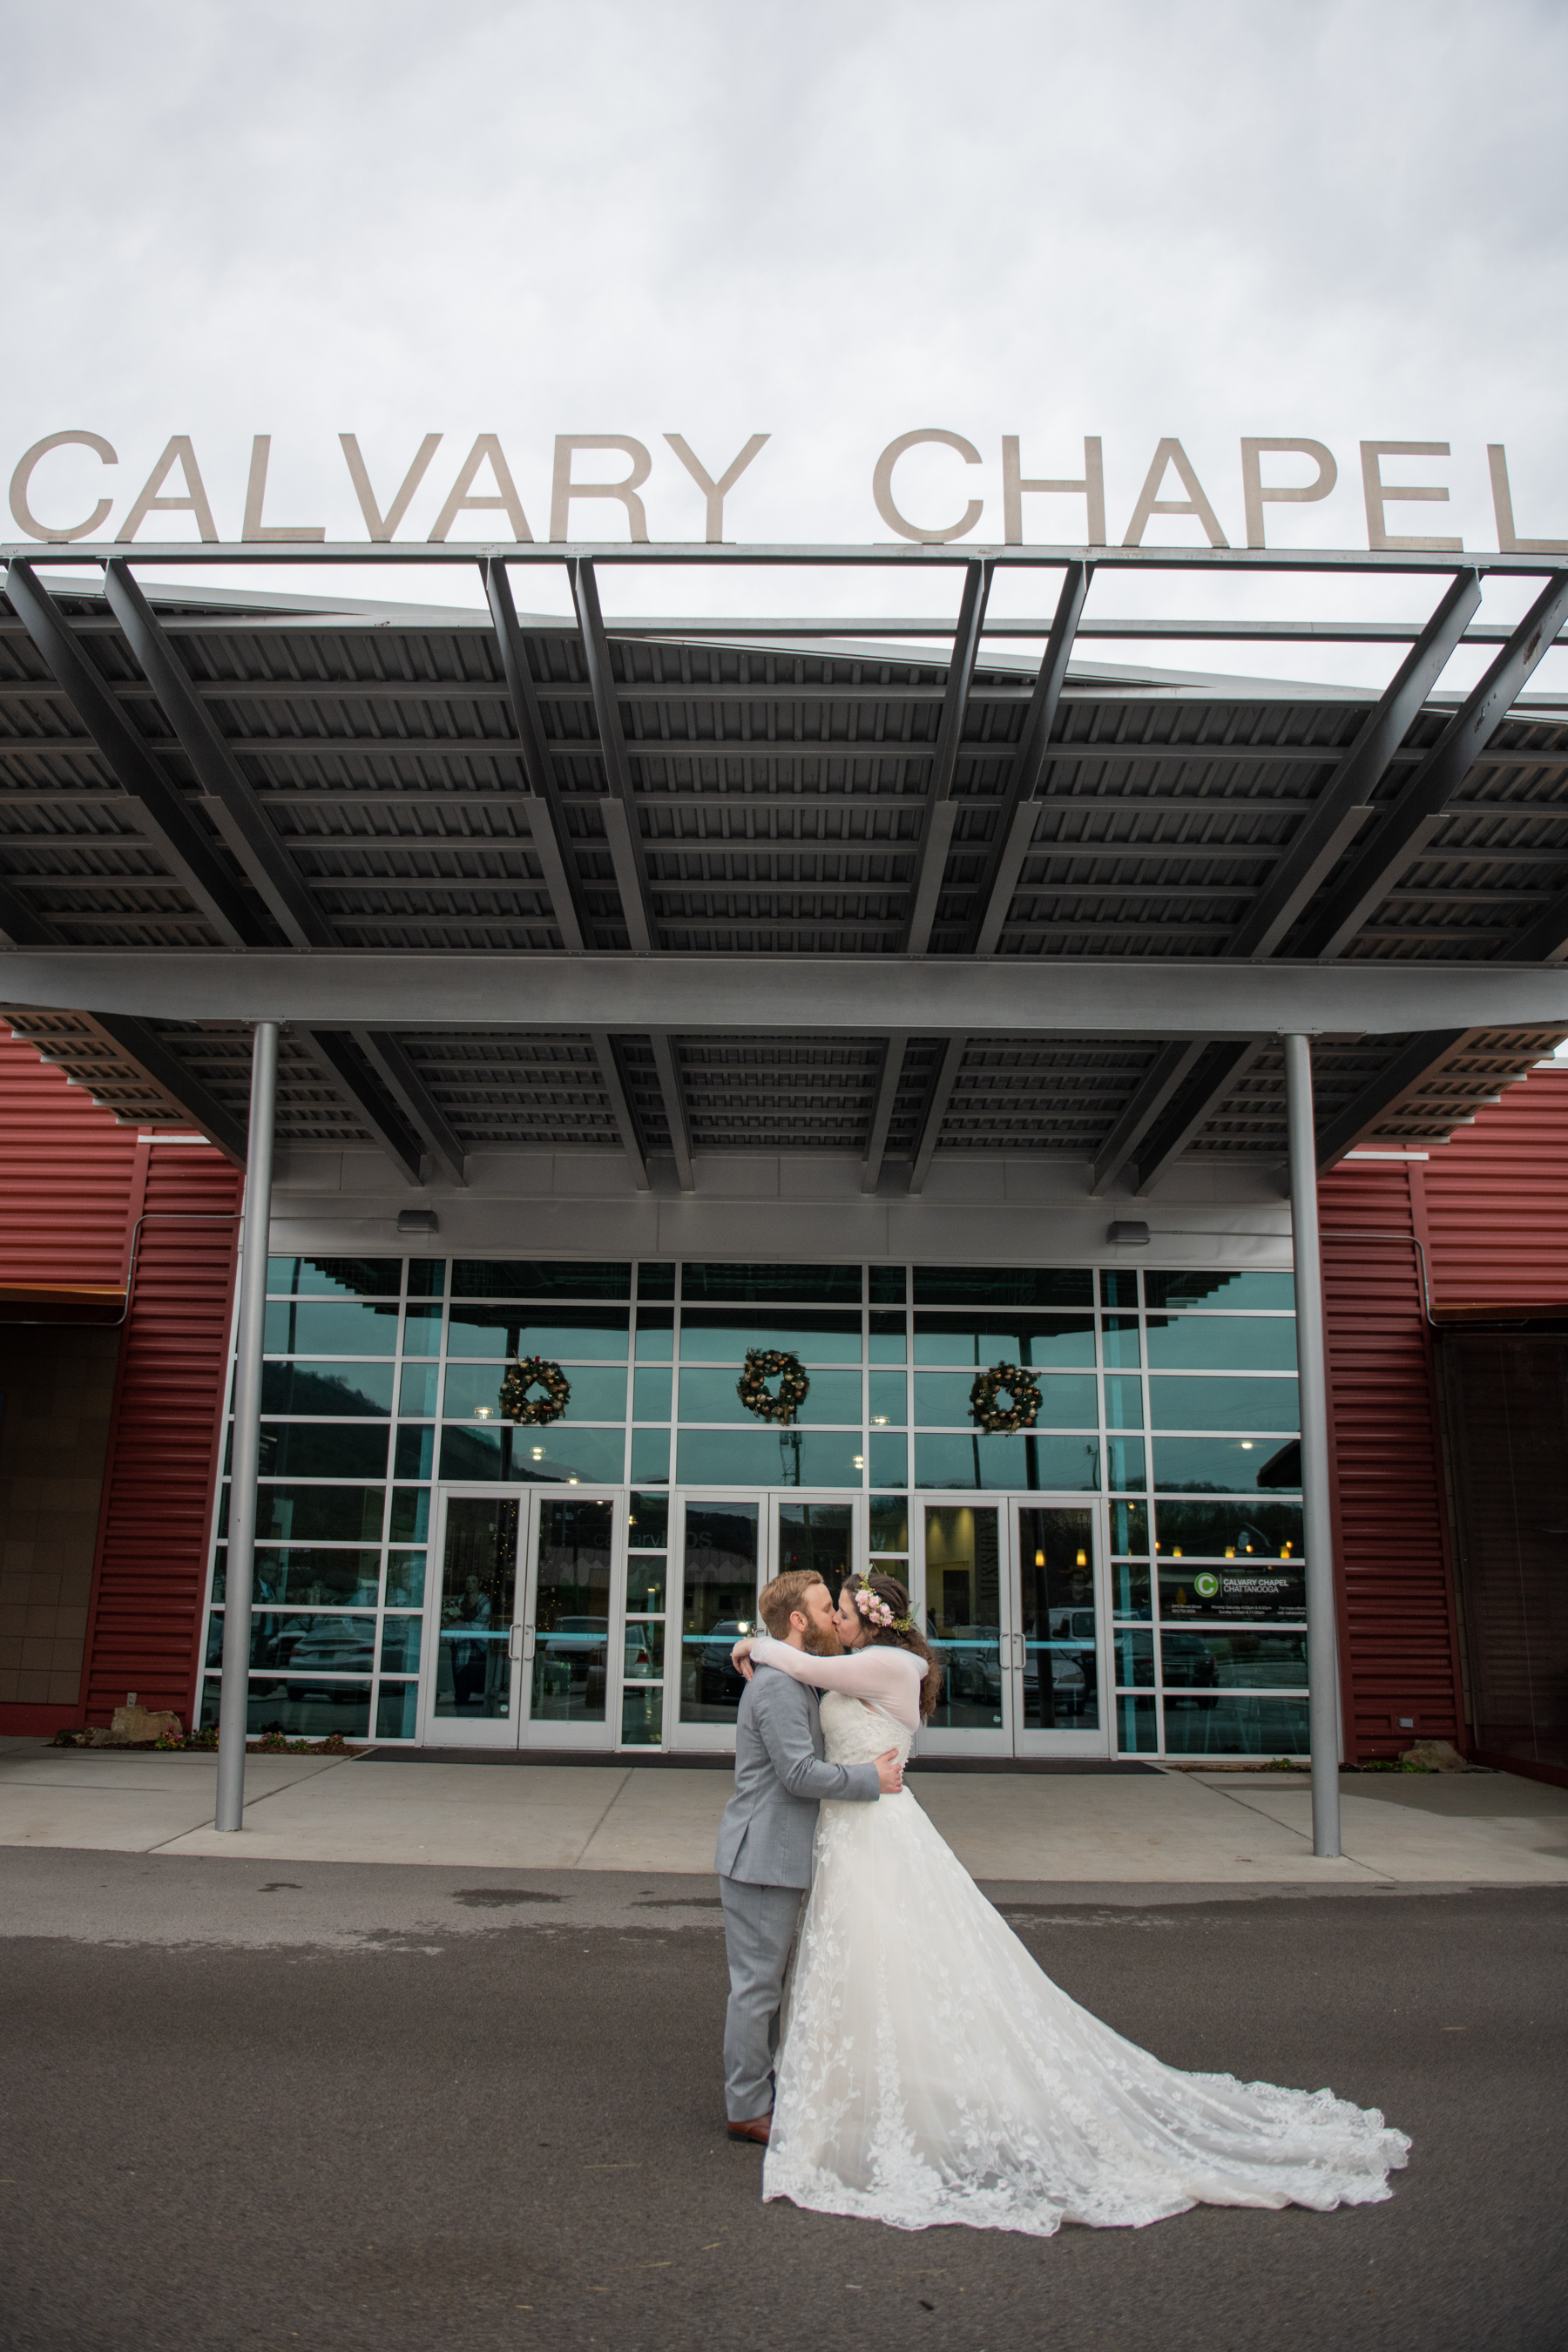 Calvary-Chapel-Chattanooga-Wedding-24.jpg